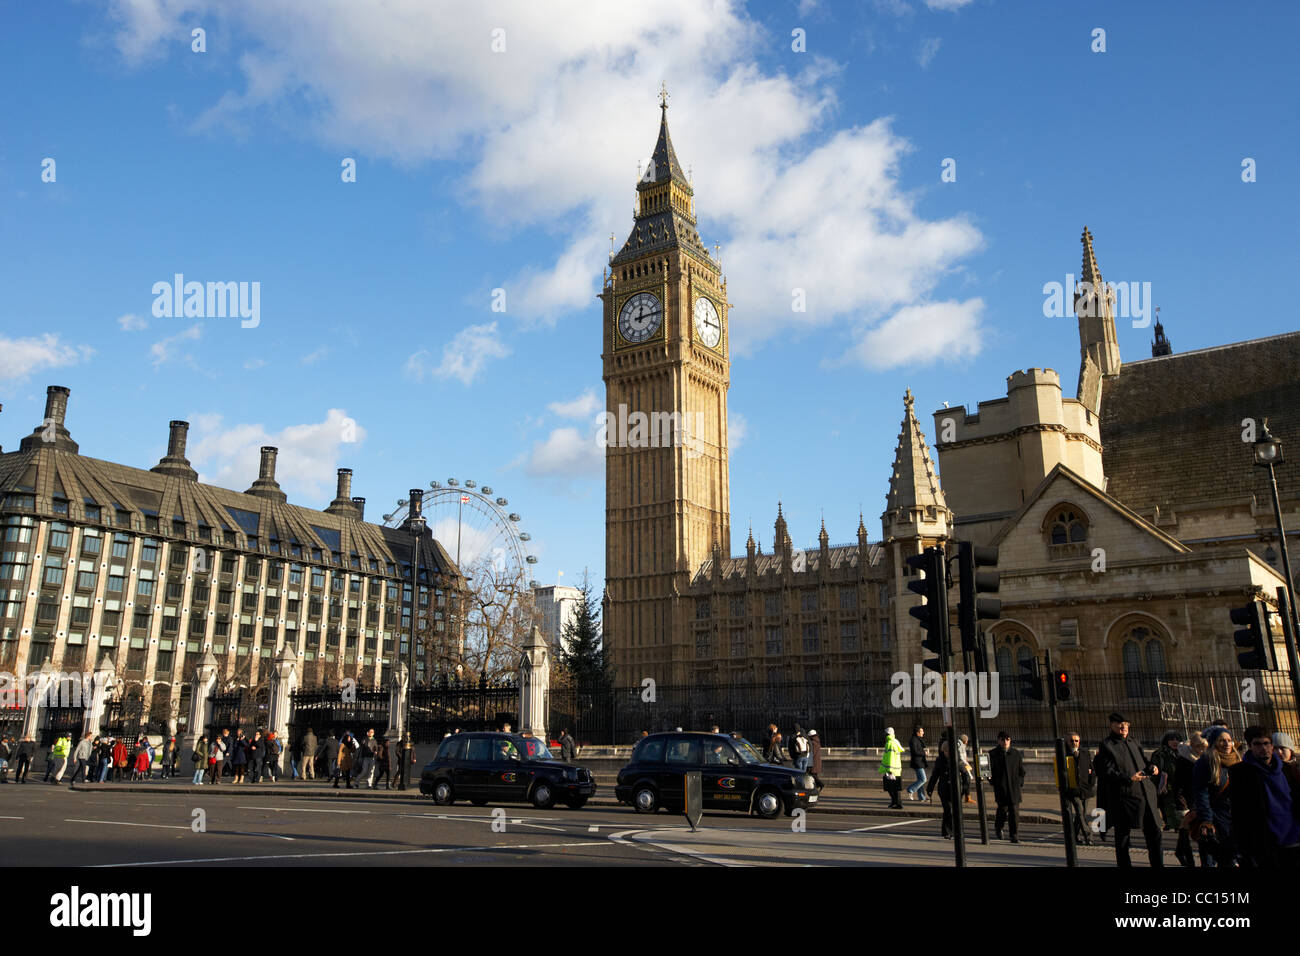 view of palace of westminster from parliament square houses of parliament buildings London England UK United kingdom - Stock Image